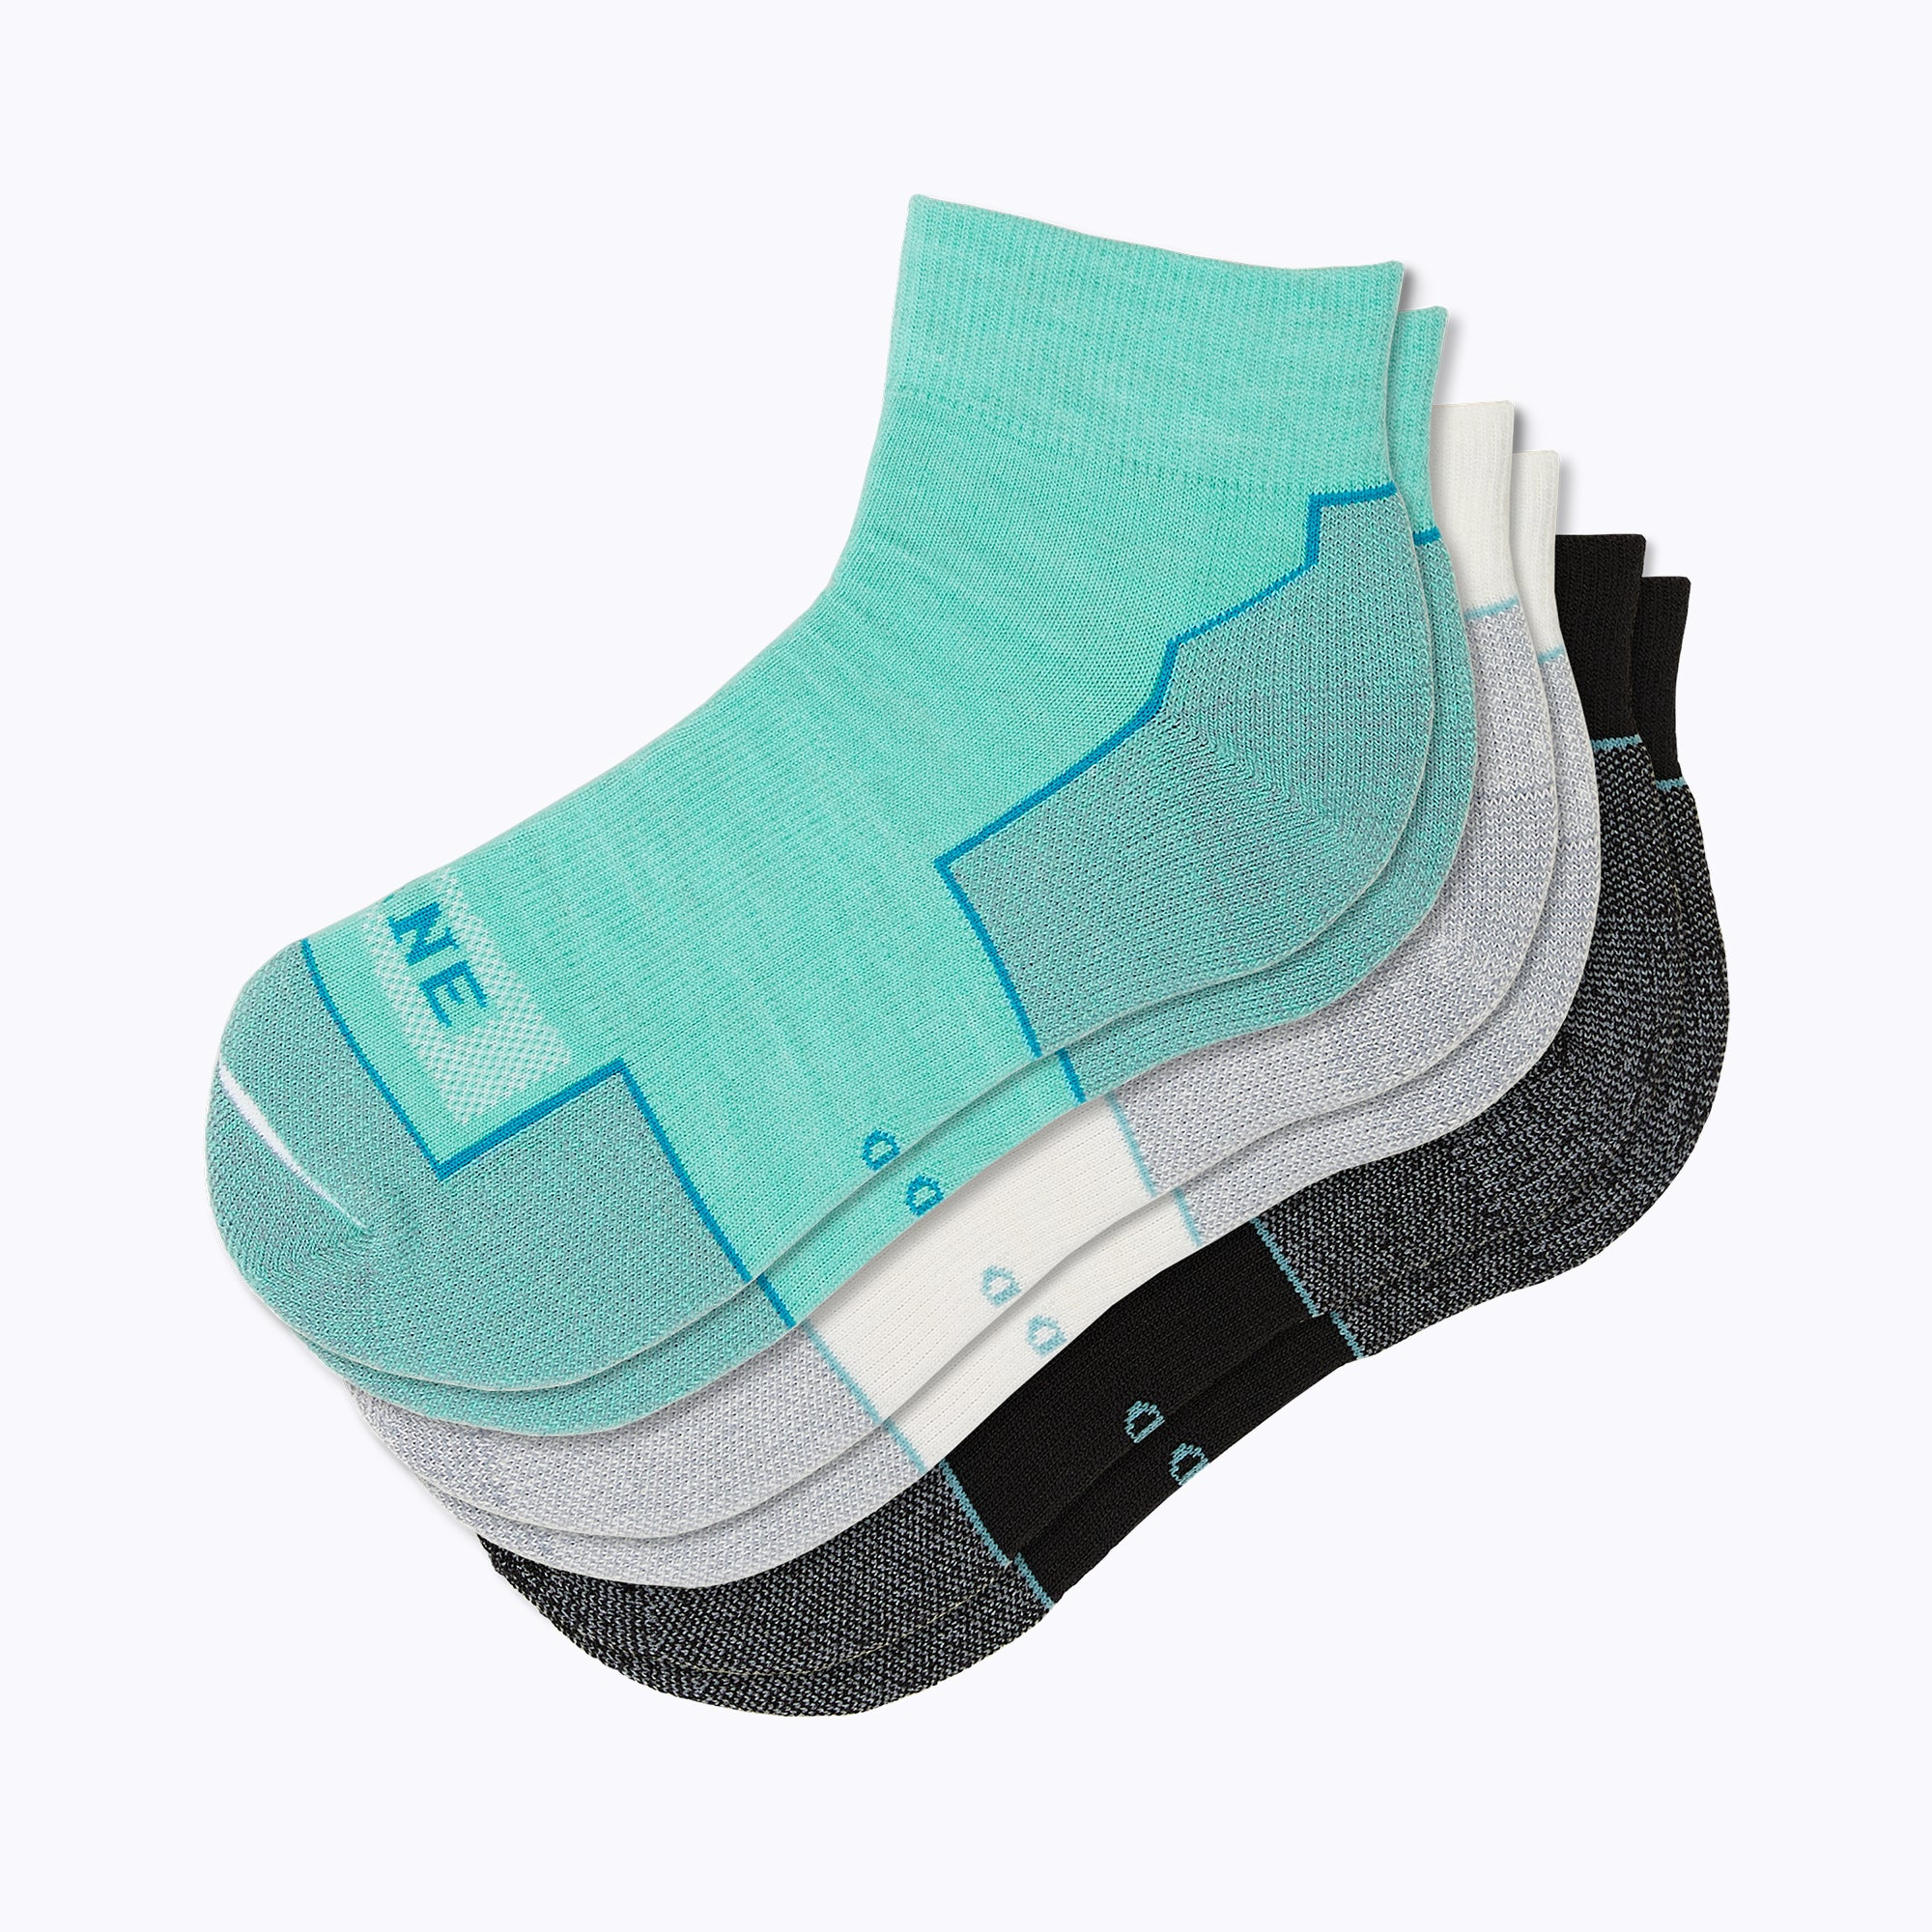 Everyday 3 Pack Mix Women's Qtr Socks - Mix by Canyon x Lane Socks